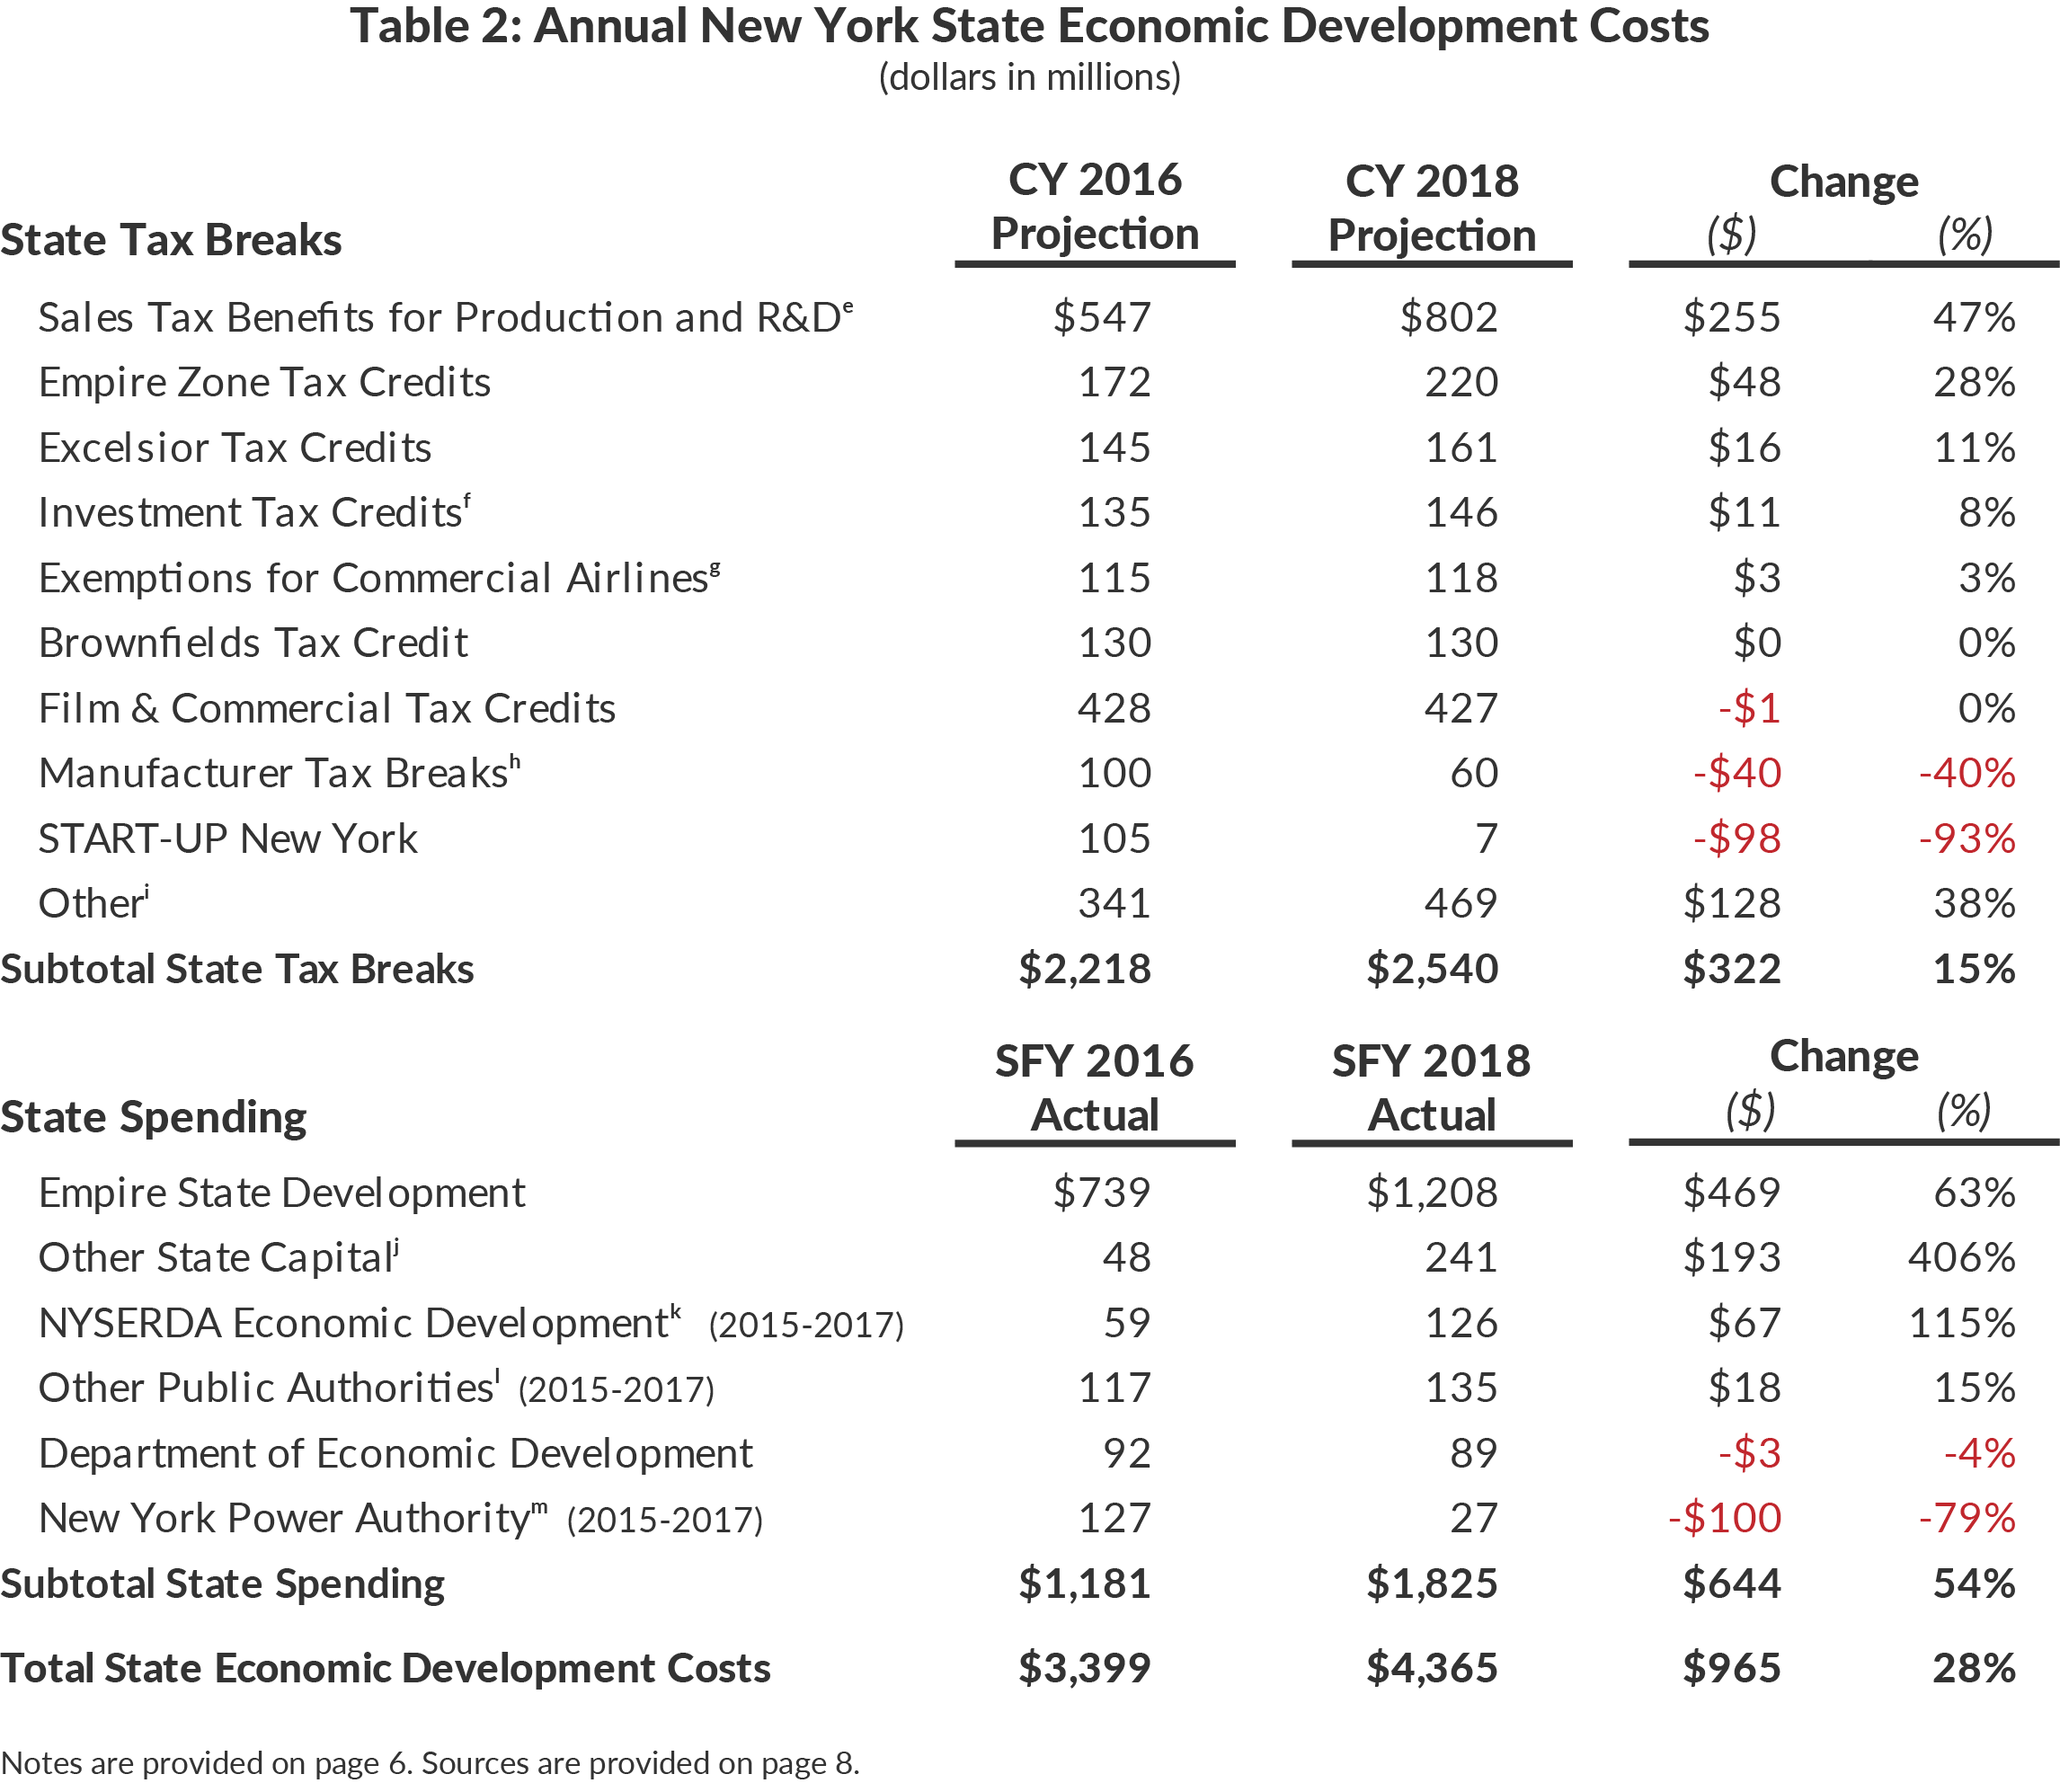 Table 2: CBC Budget Adjustments Made to Account forShifts in State Operating Funds Spending (SOF)